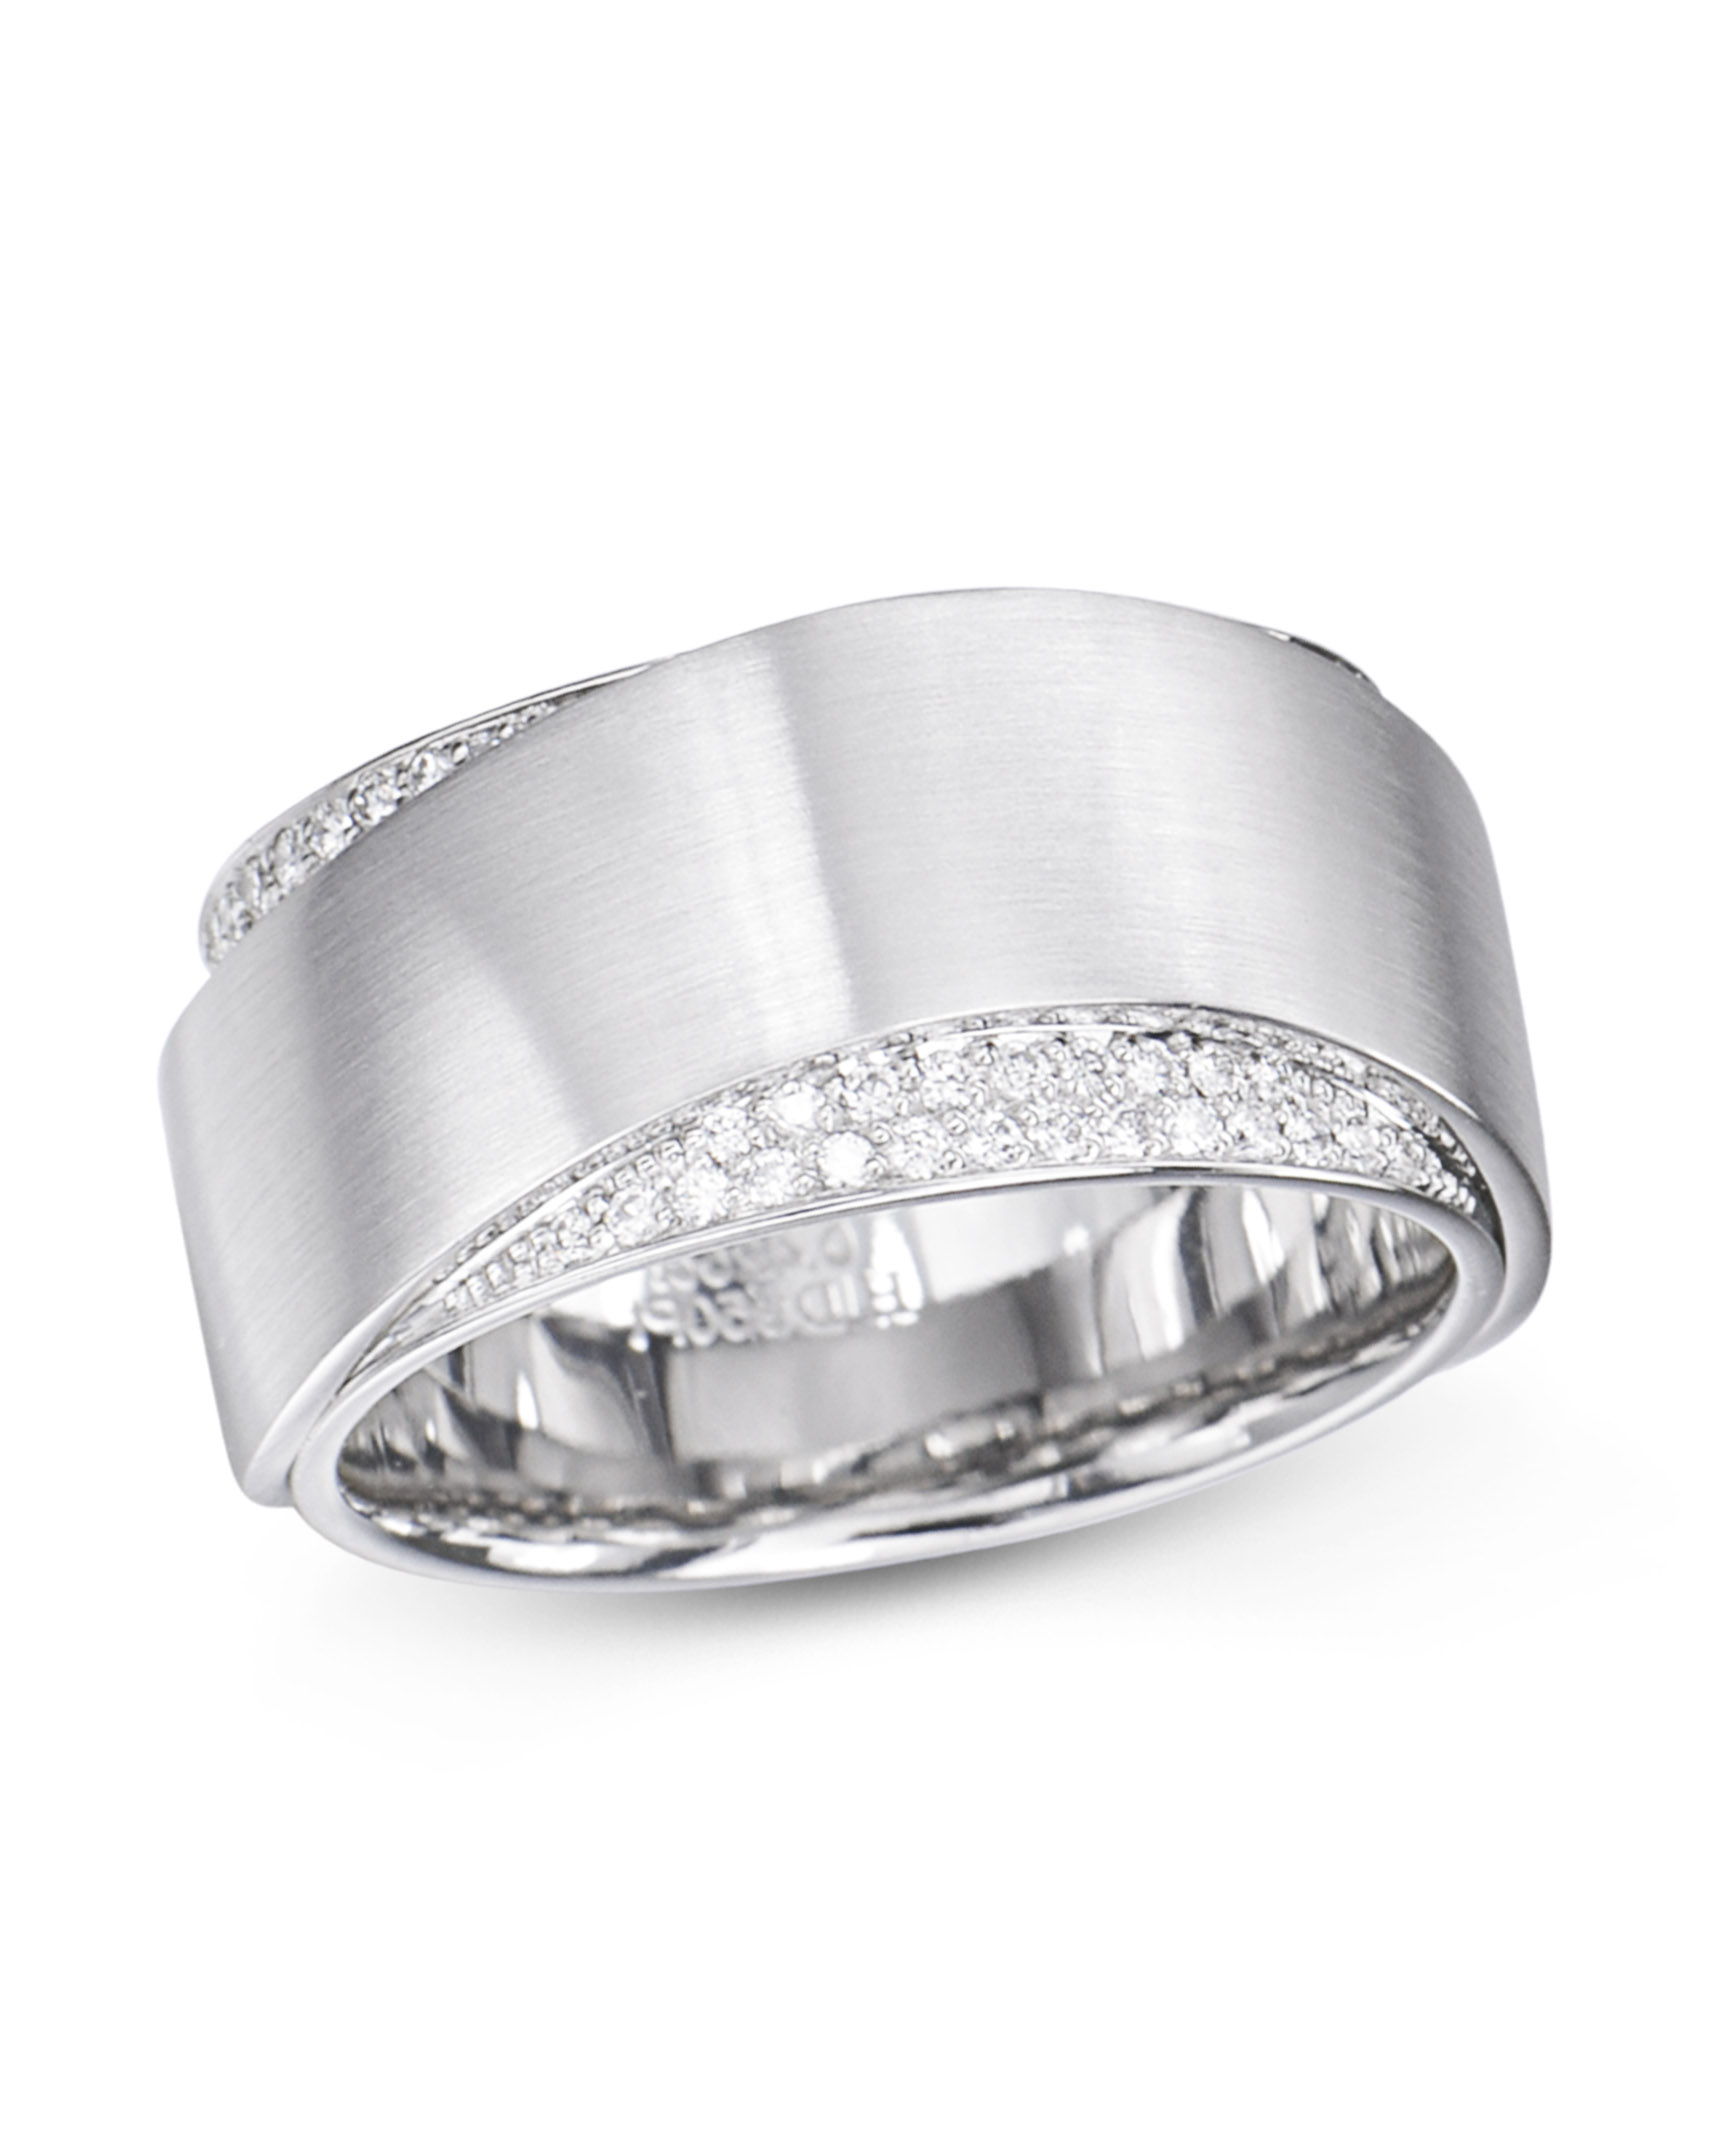 Platinum Wave Design Pavé Set Diamond Wedding Band Intended For Most Up To Date Wave Diamond Wedding Bands With Pavé (View 4 of 25)